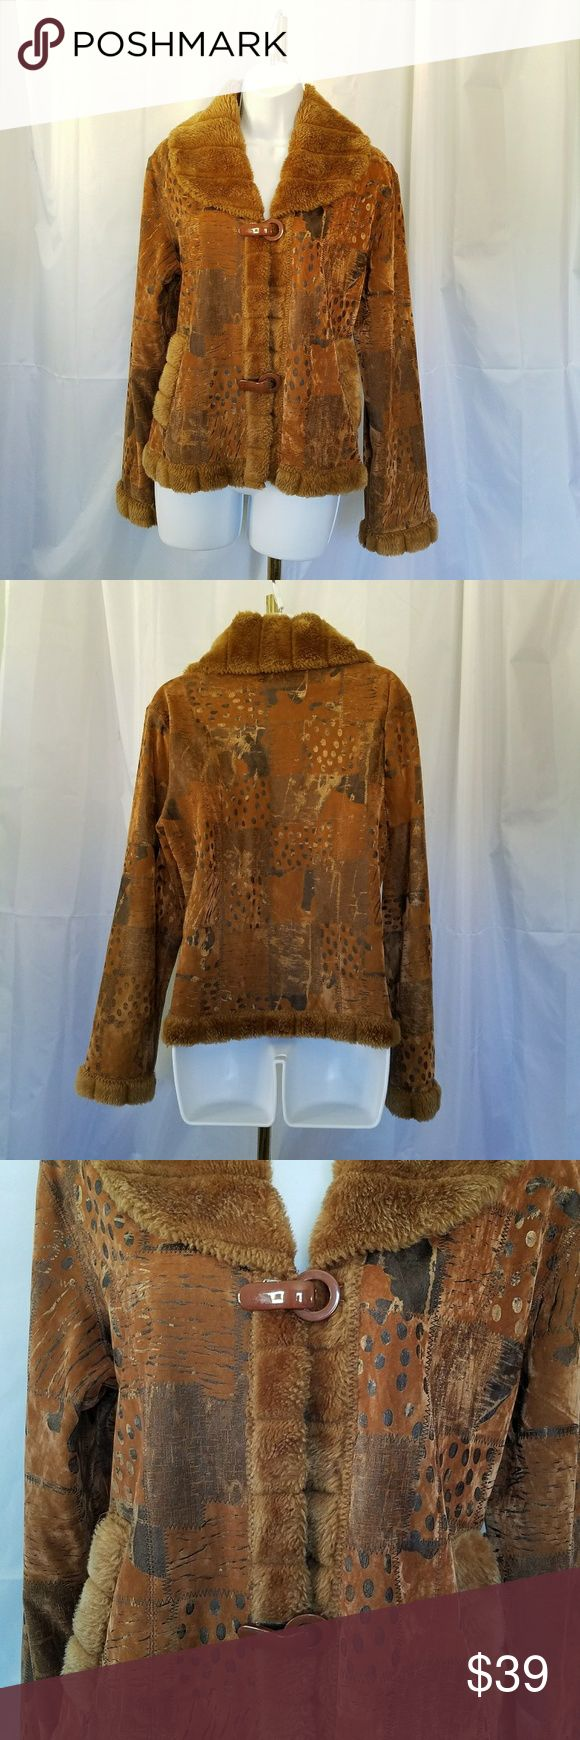 "VINTAGE BROWN GOLD FAUX FUR TRIM JACKET S/M VINTAGE PHOENIX BROWN GOLD PATCHWORK LO9K JACKET IS TRIMMED IN FAUX FUR. Channel your inner hippie when you wear this jacket.  Two large brown toggles provide closure.  It is FLEECE LINED. Armpit to armpit is 19.75""*and shoulder to hem length is 23"". All measurements are approximate and taken flat. Vintage Jackets & Coats"